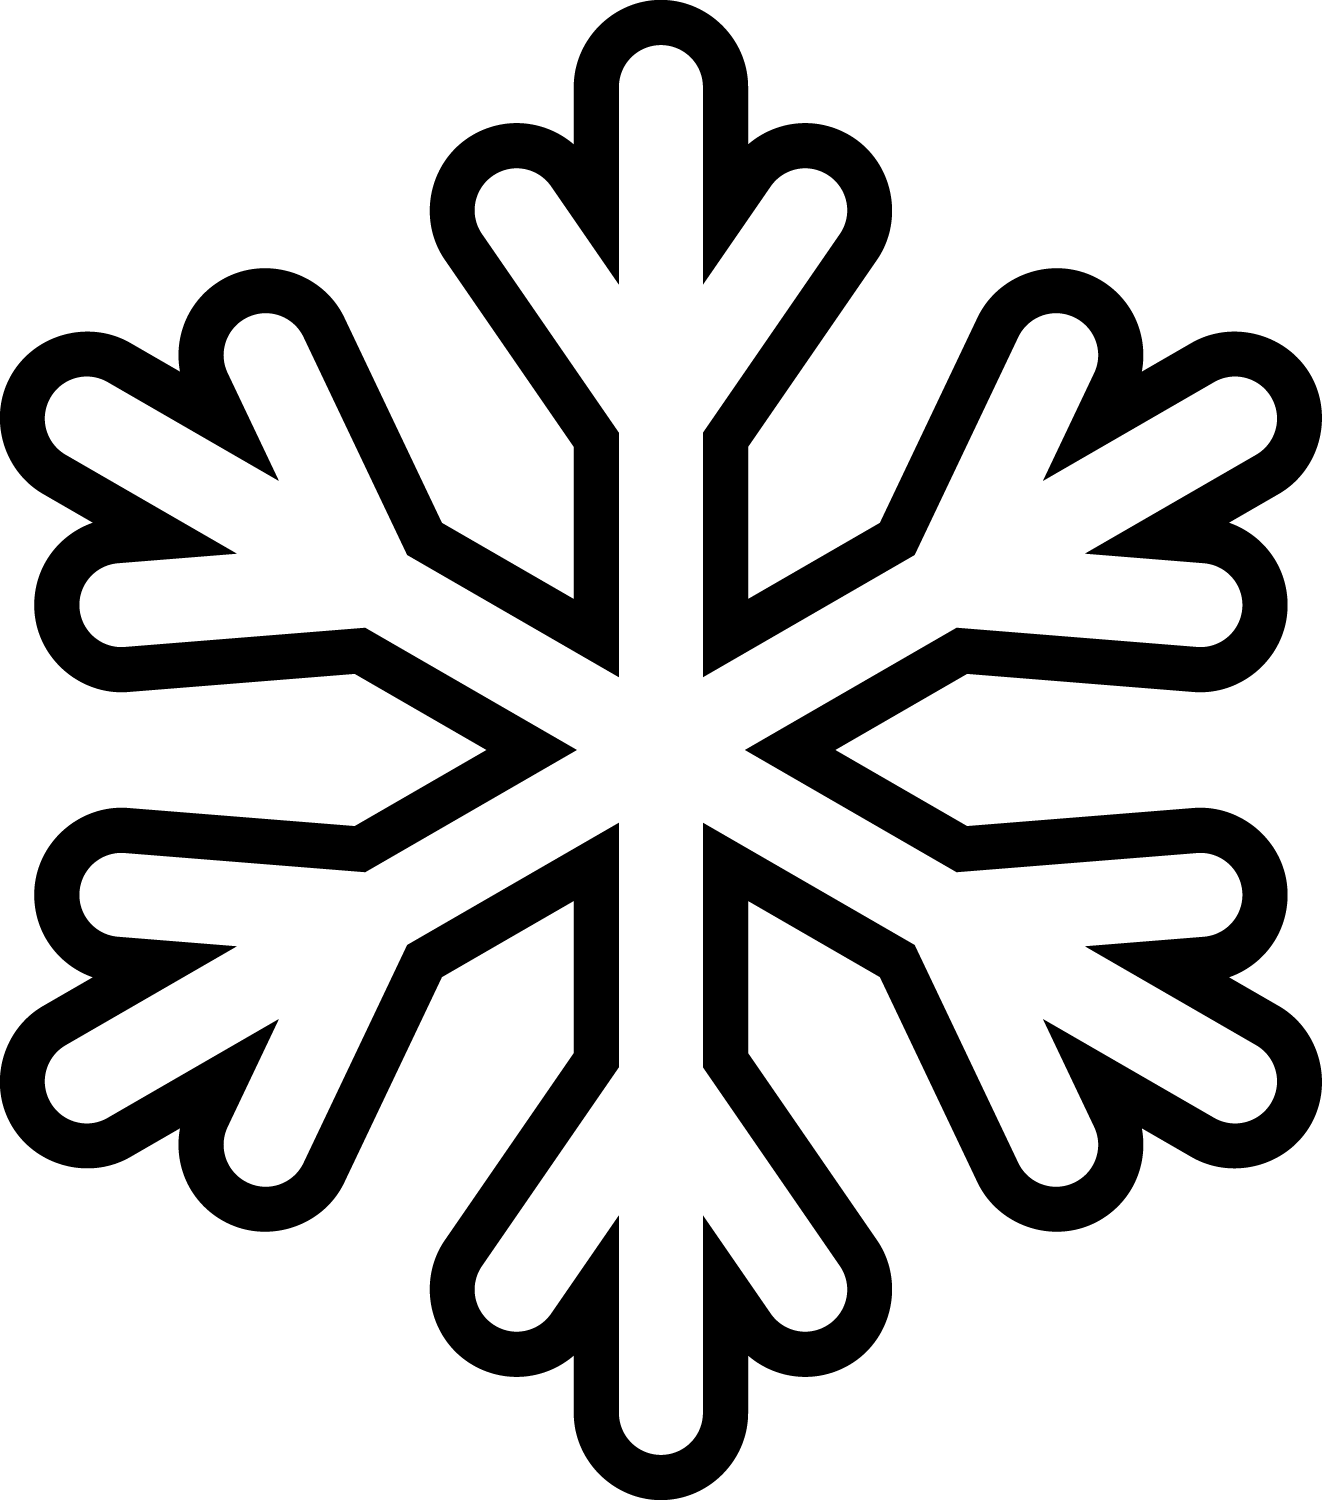 Green snowflake clipart clip art free stock Snowflake clipart - Graphics - Illustrations - Free Download on ... clip art free stock